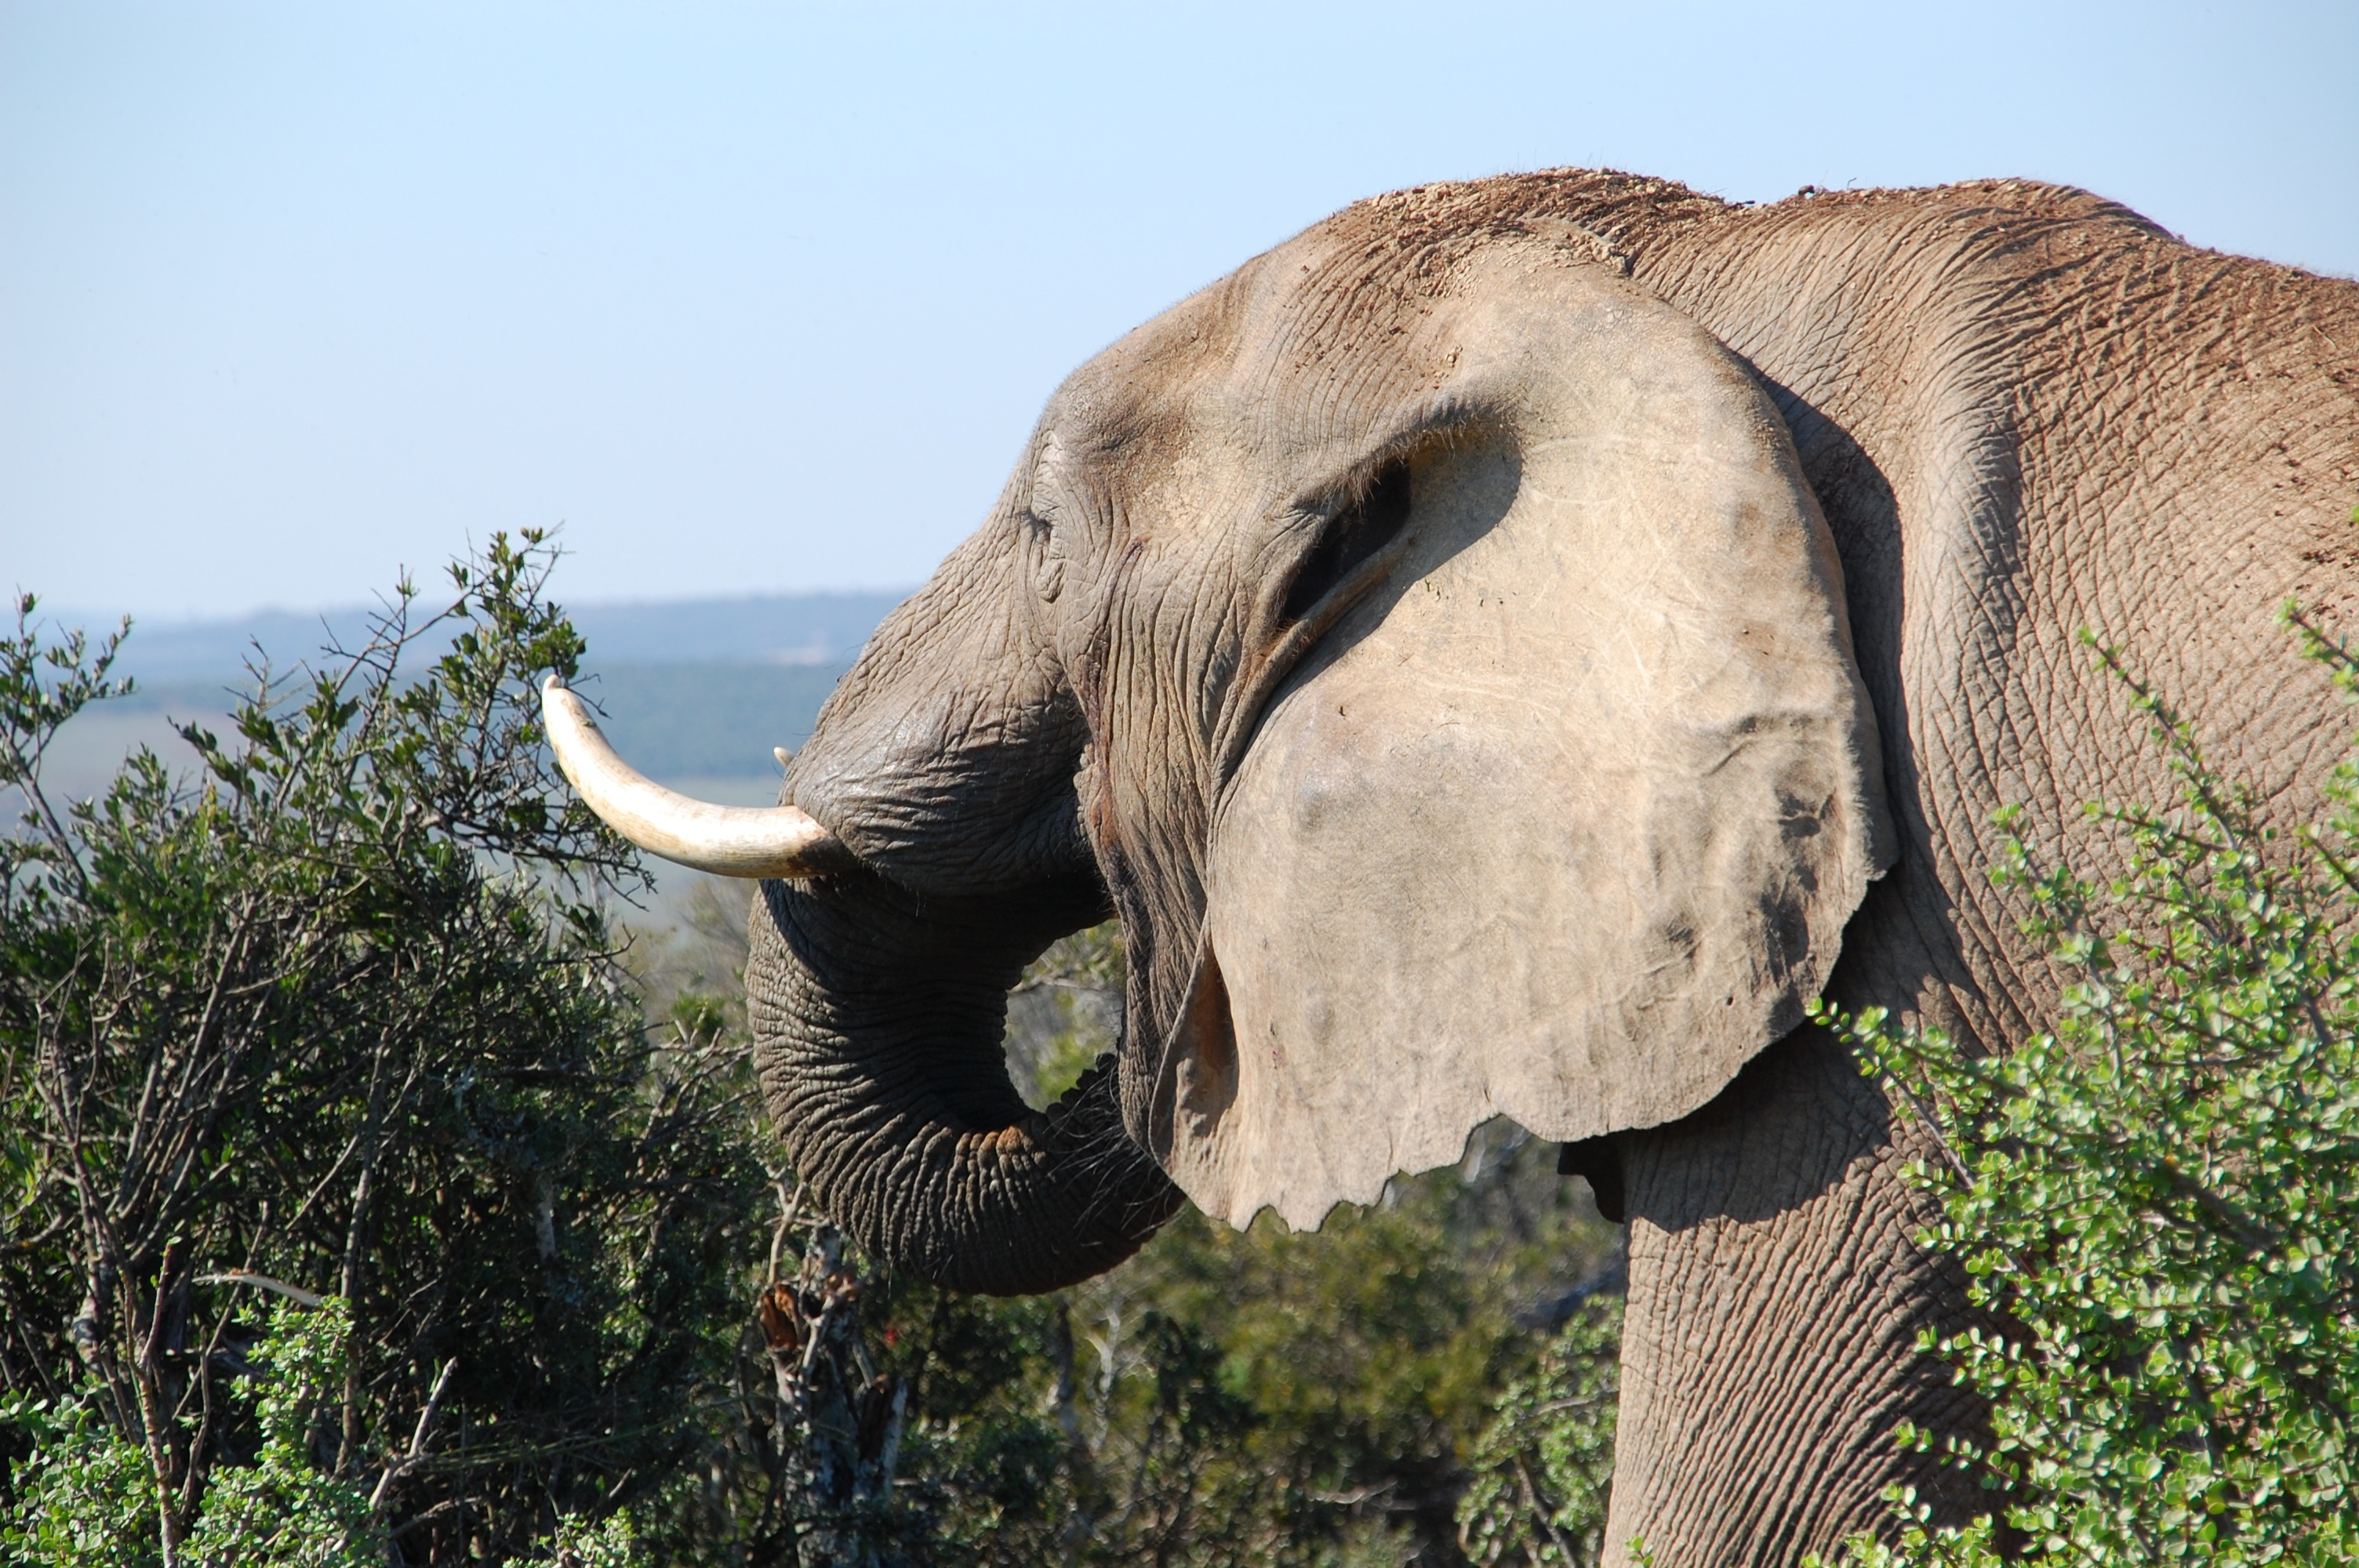 grey elephant by the bushes at mountain top during daytime free